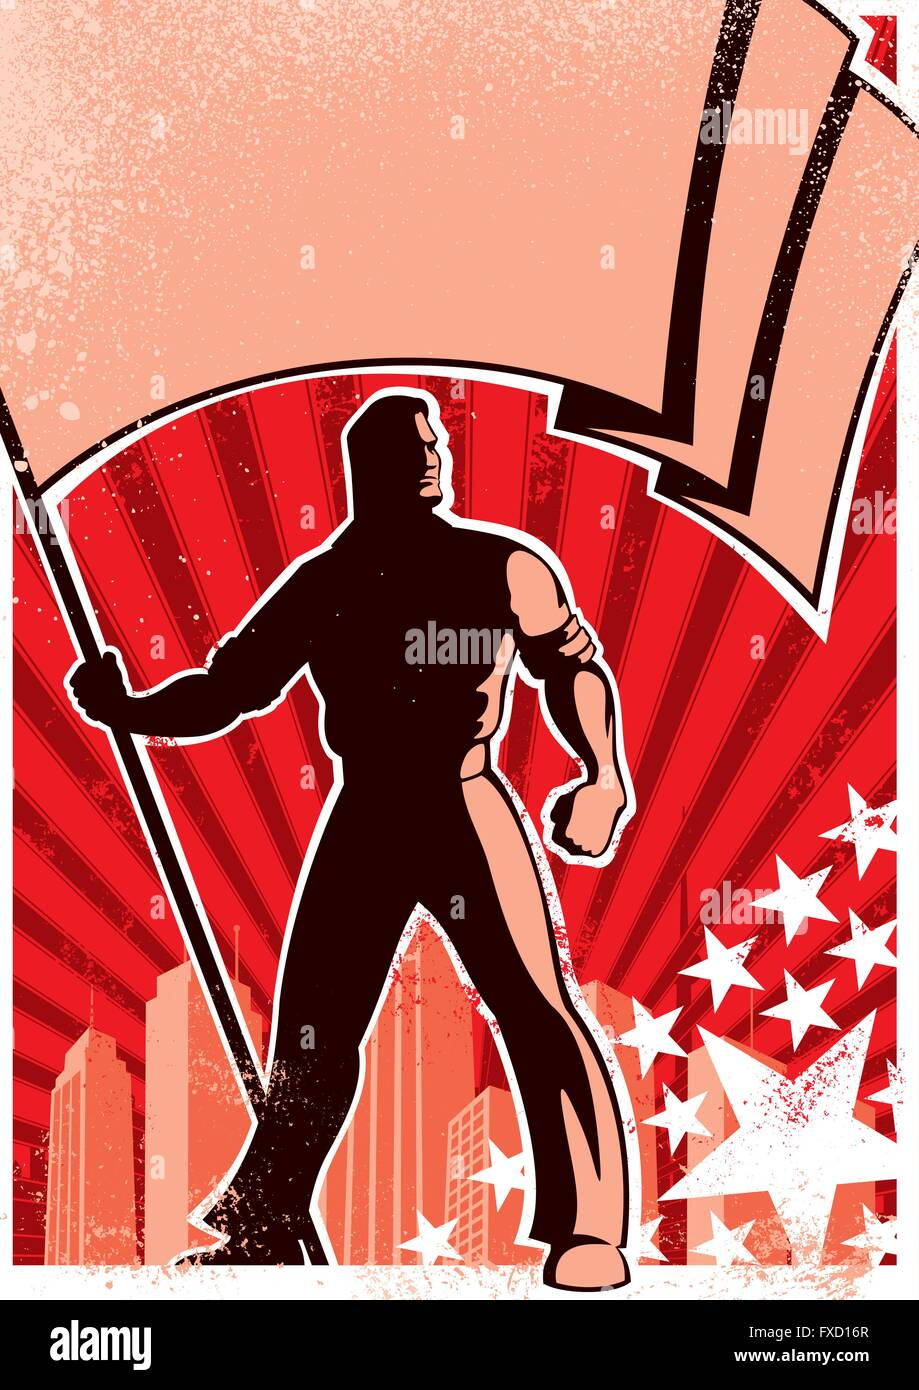 Retro poster with flag bearer. - Stock Vector